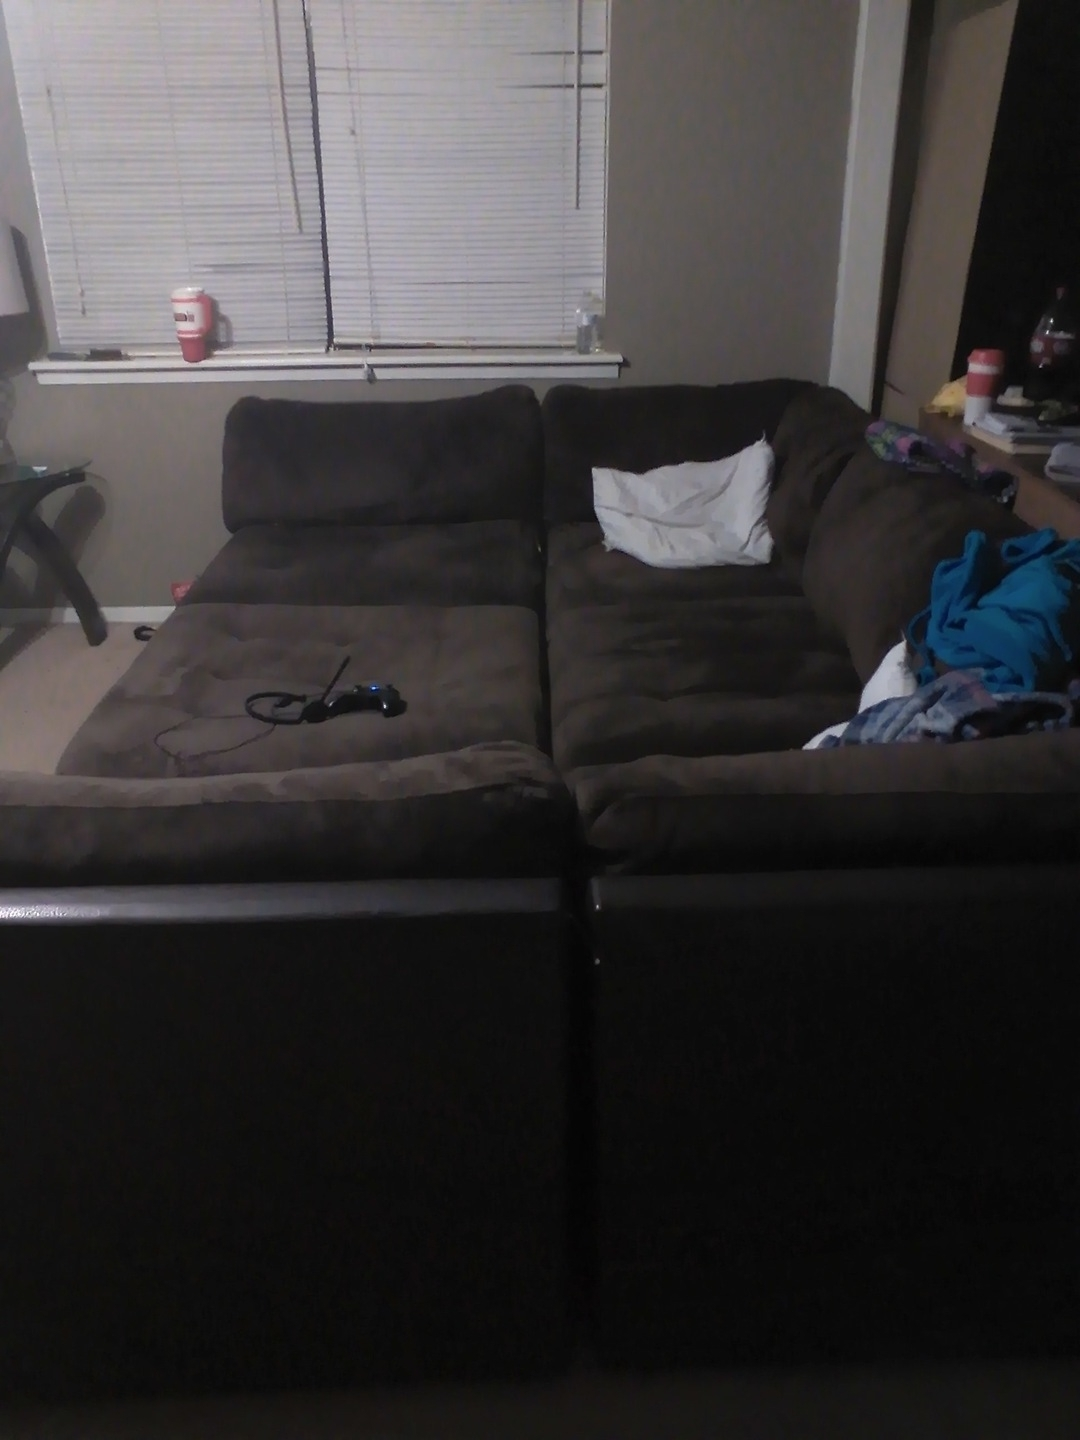 Sectional Sofas At Aarons Regarding 2018 Top Complaints And Reviews About Aaron Rents I Live With Some (View 10 of 15)